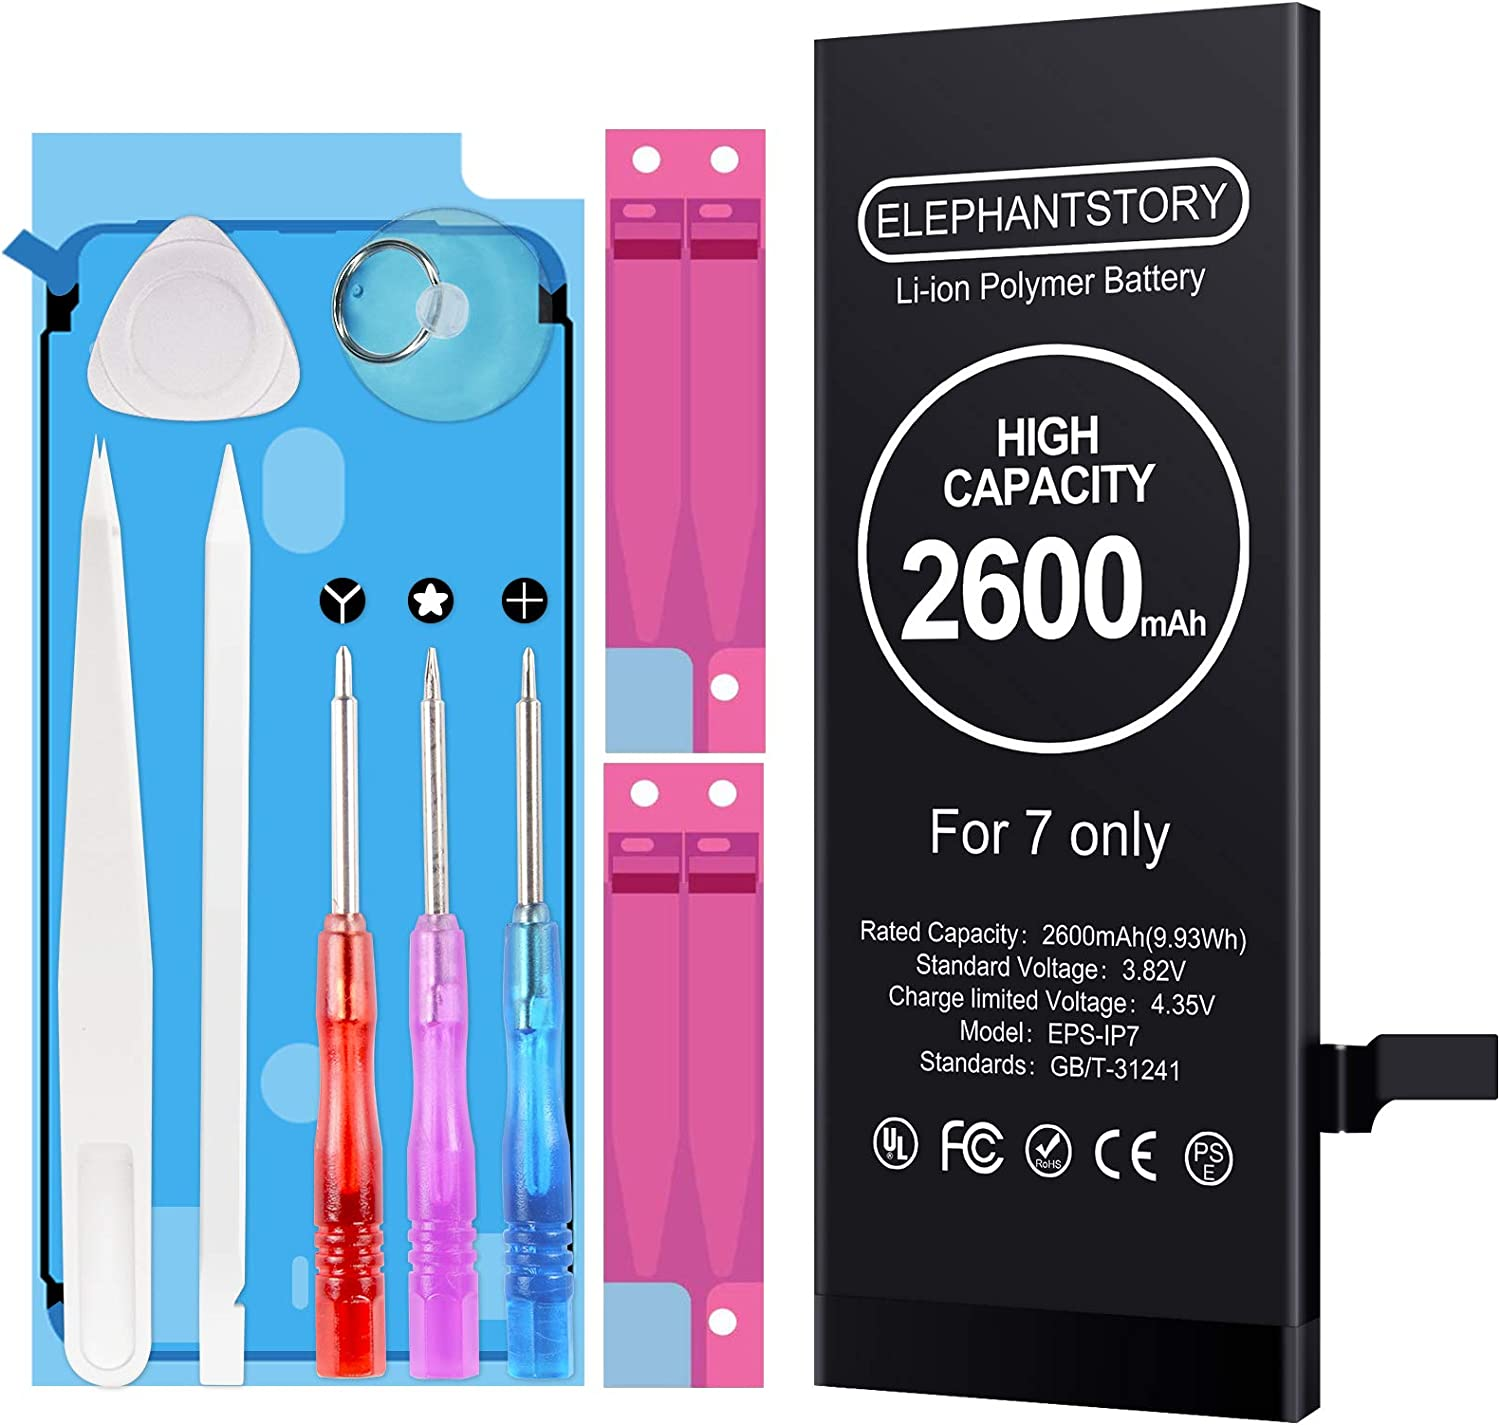 Amazon Com Battery For Iphone 7 7g High Capacity 2600mah Iphone 7 Replacement Battery New 0 Cycle Fit For Model A1660 A1778 And A1779 With Professional Repair Tool Kit And Instructions Upgraded Electronics